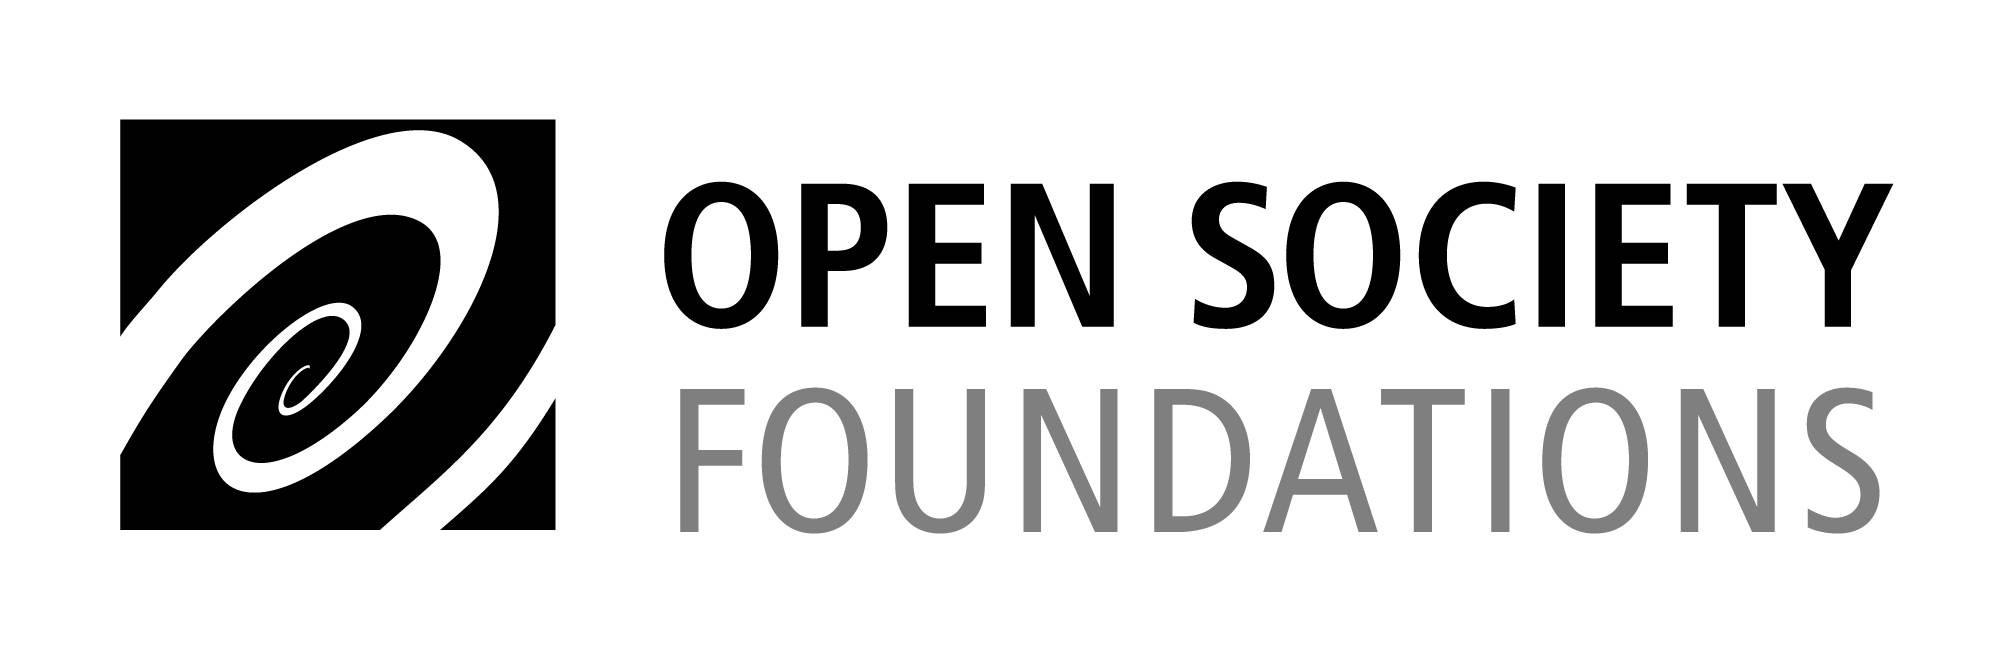 Open Society Foundation (OSF)